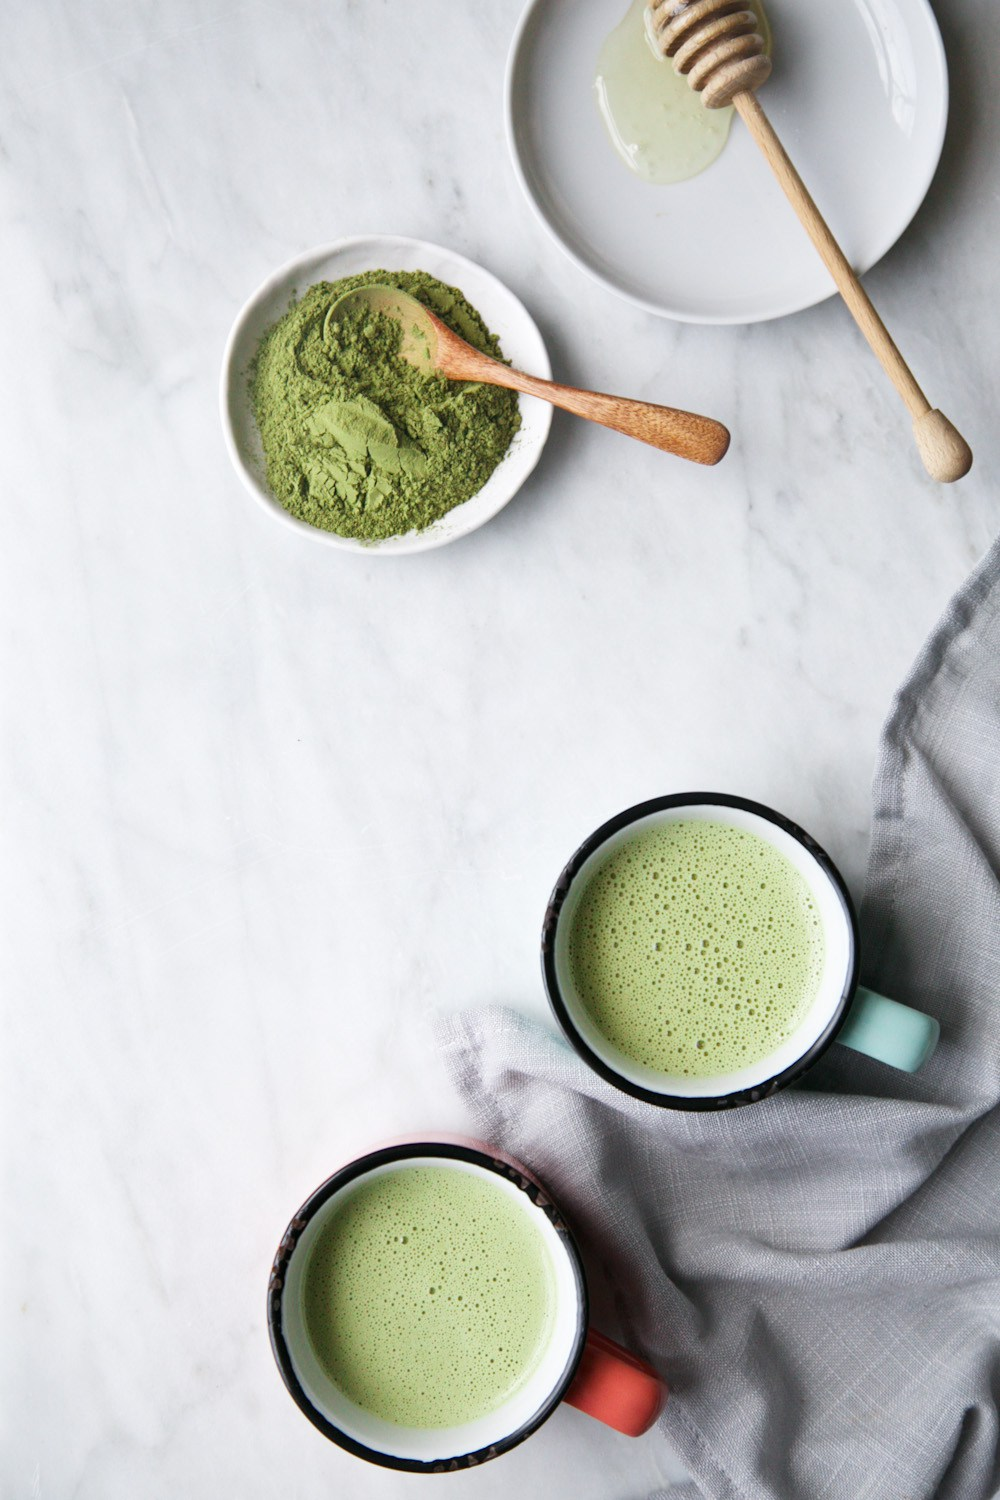 Creamy matcha and moringa latte